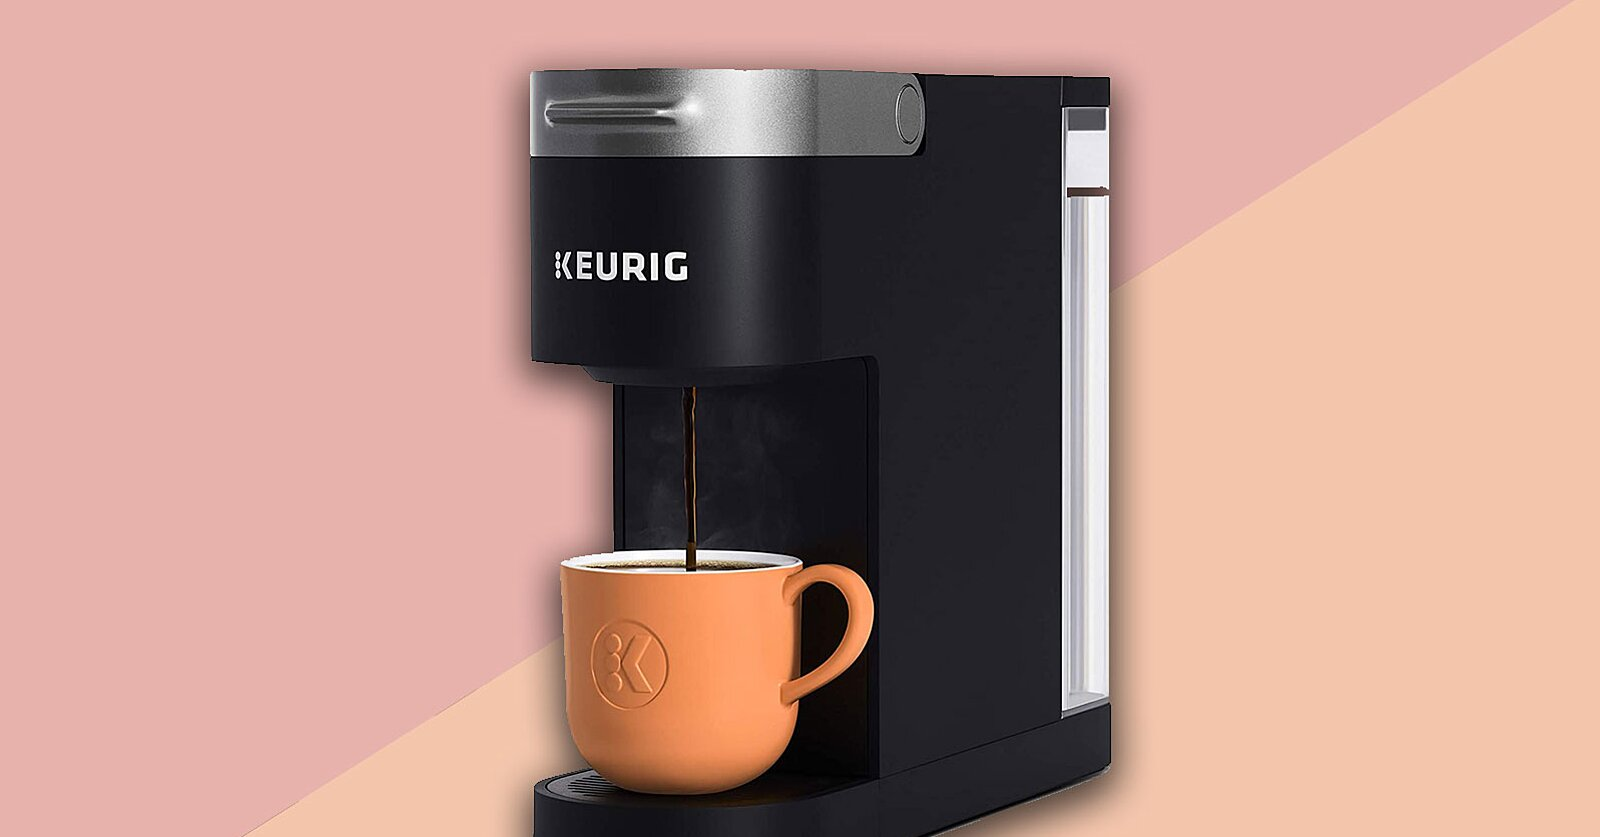 Keurig's Best-selling Single-serve Coffee Maker Is 55% Off for Black Friday Now